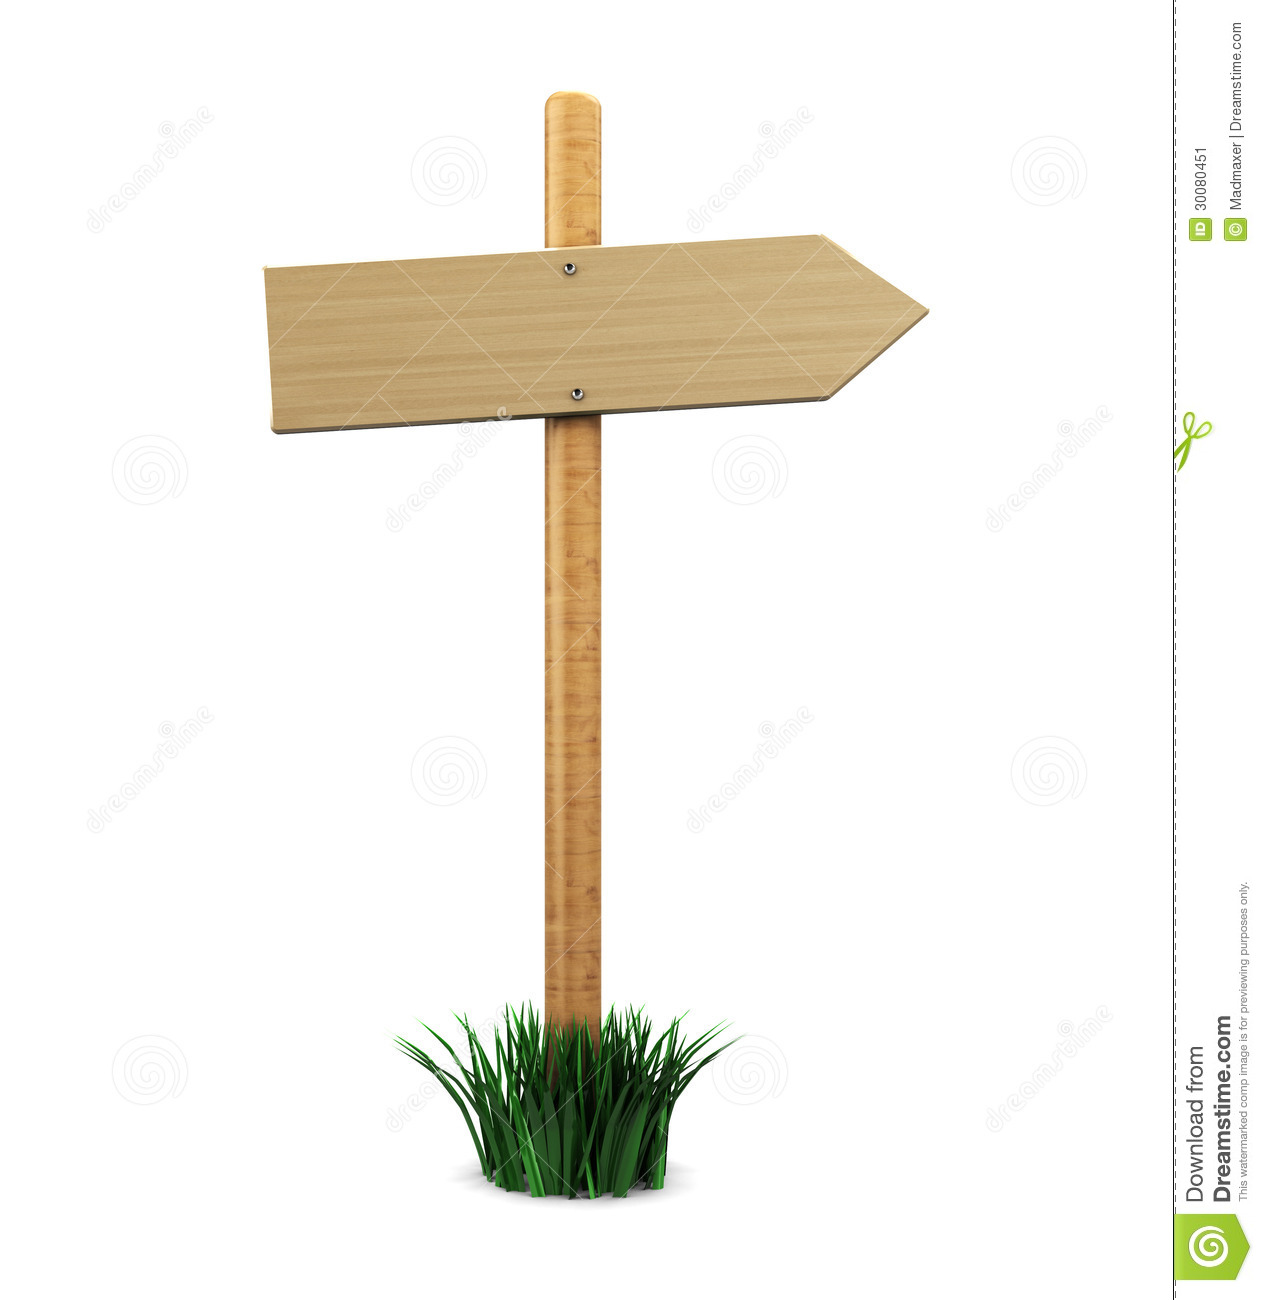 wood direction sign stock